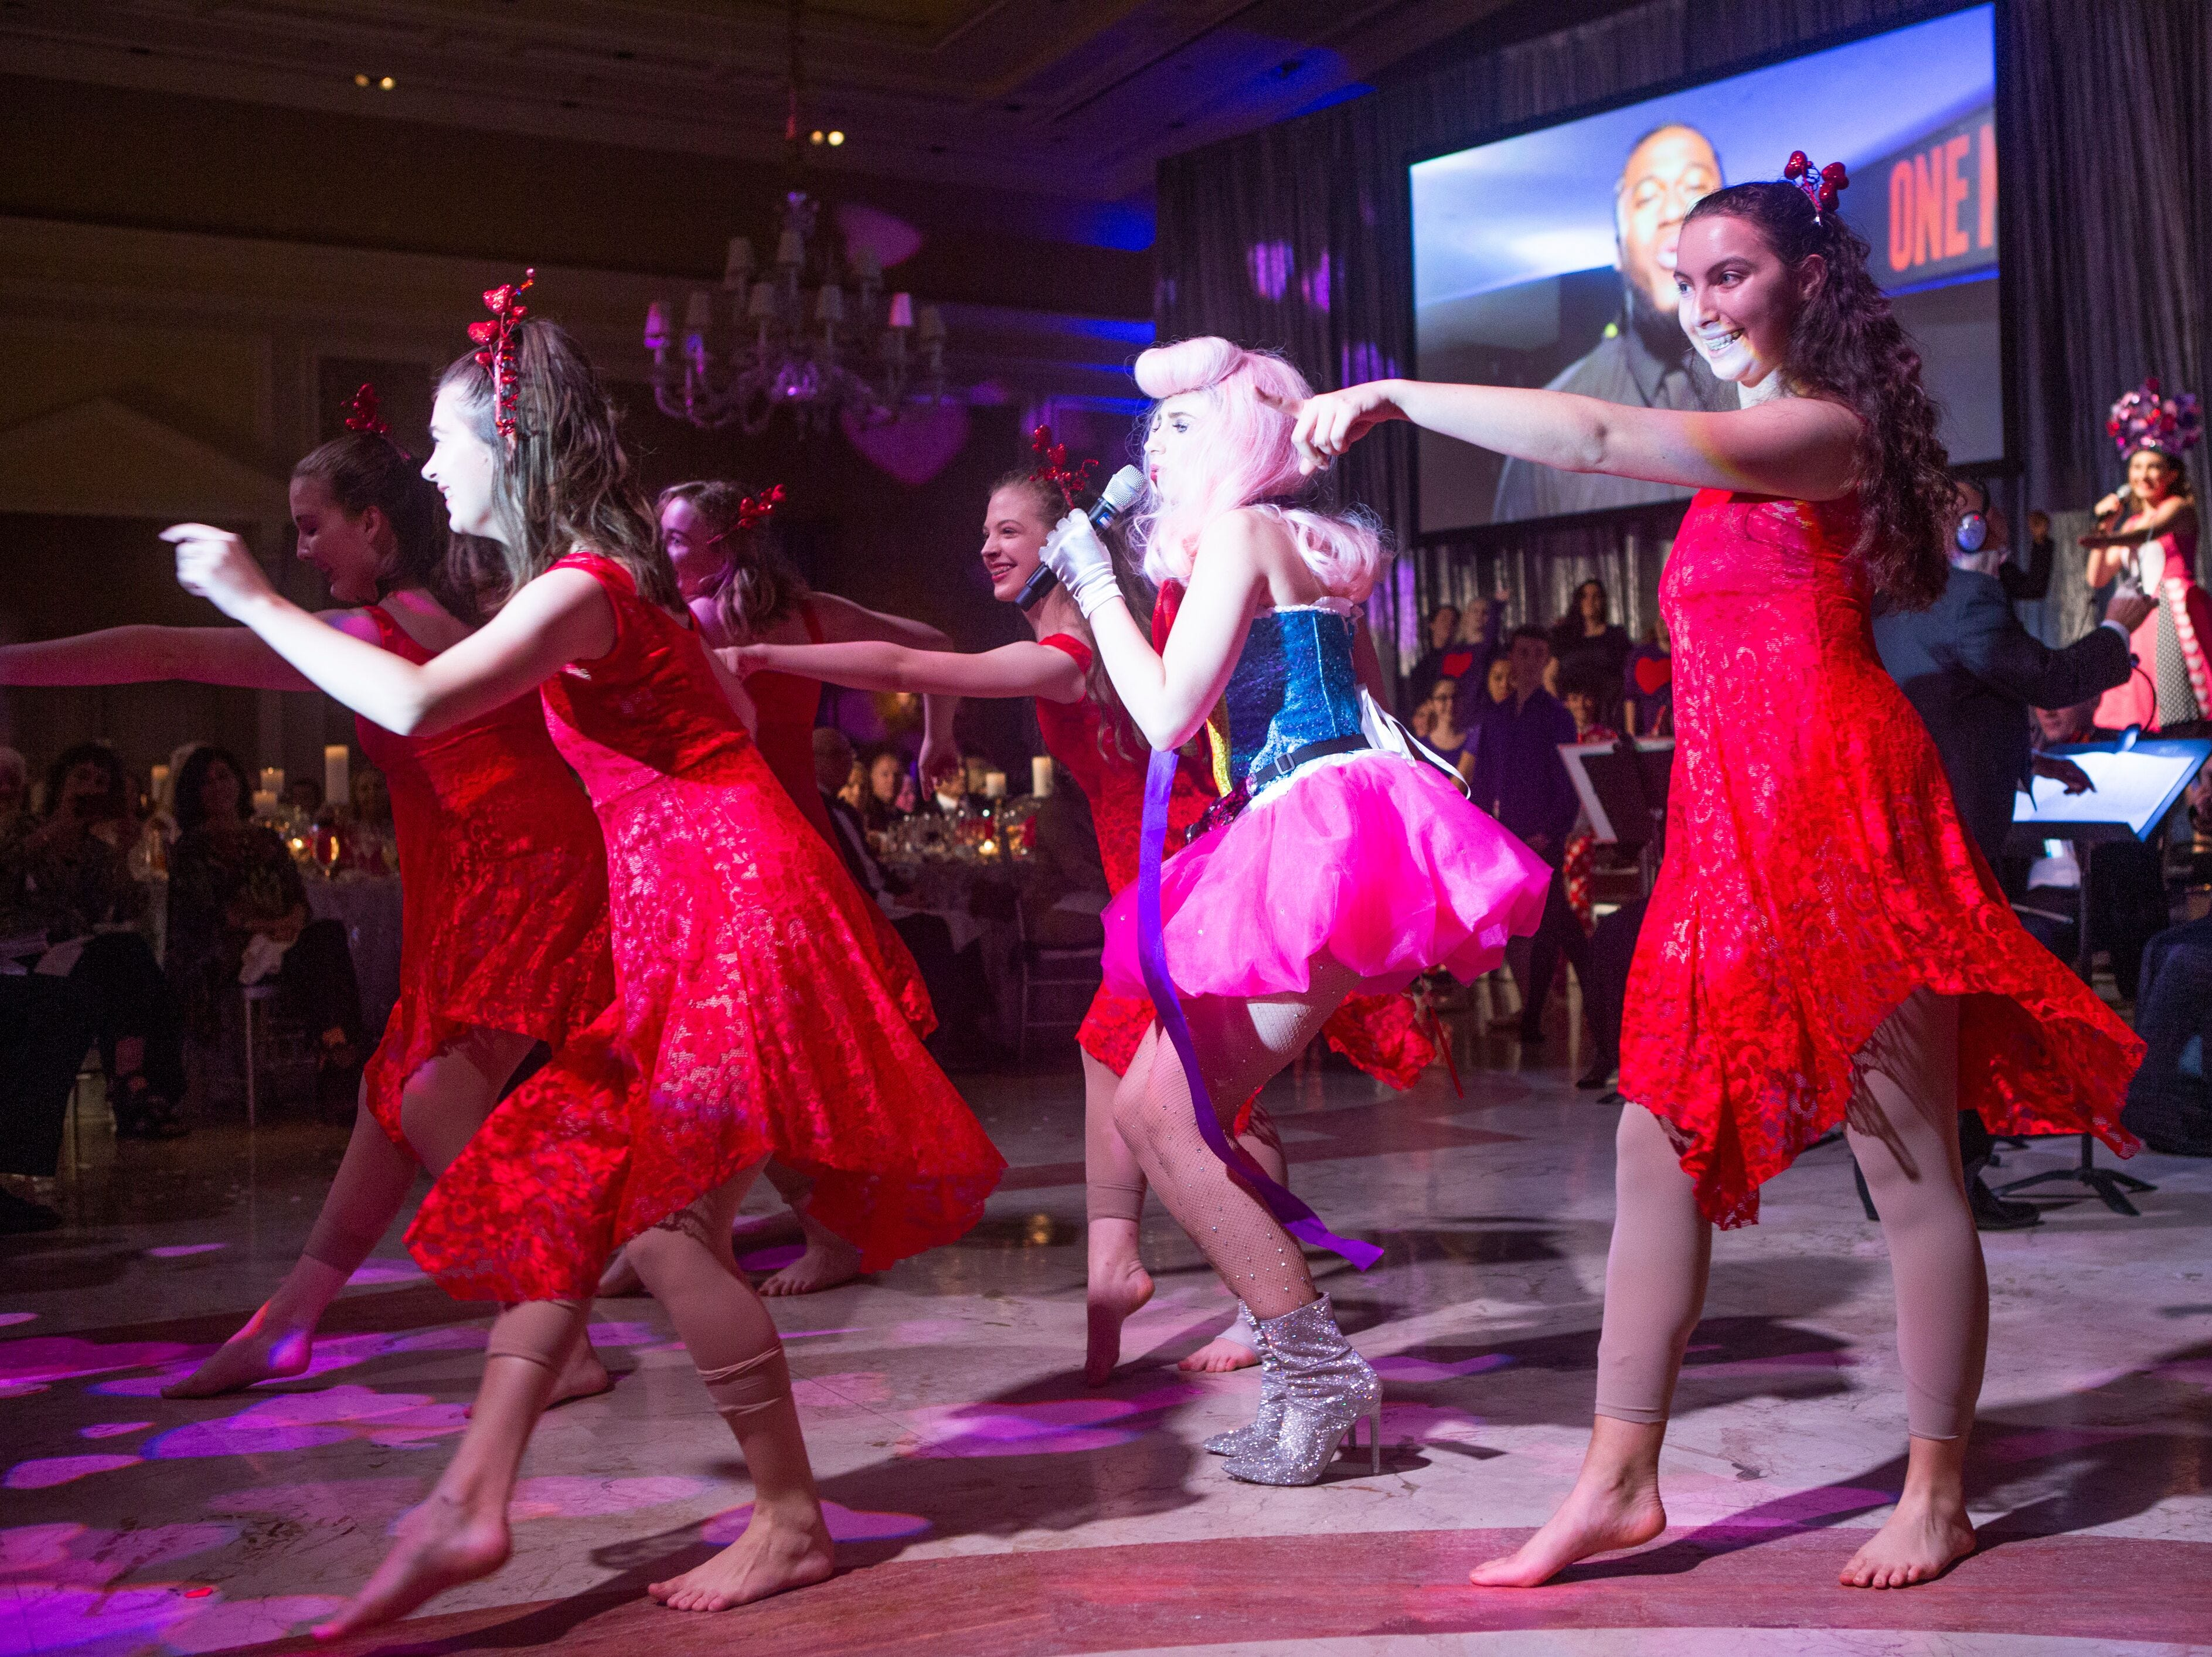 """The Disco Ball"" featured high-energy performances by more than 100 youth performers, including Alina Pimentel, front left, Goldner Conservatory graduate Emily Rynasko, center, and Aviva Senzon, front right, at The Breakers Palm Beach."